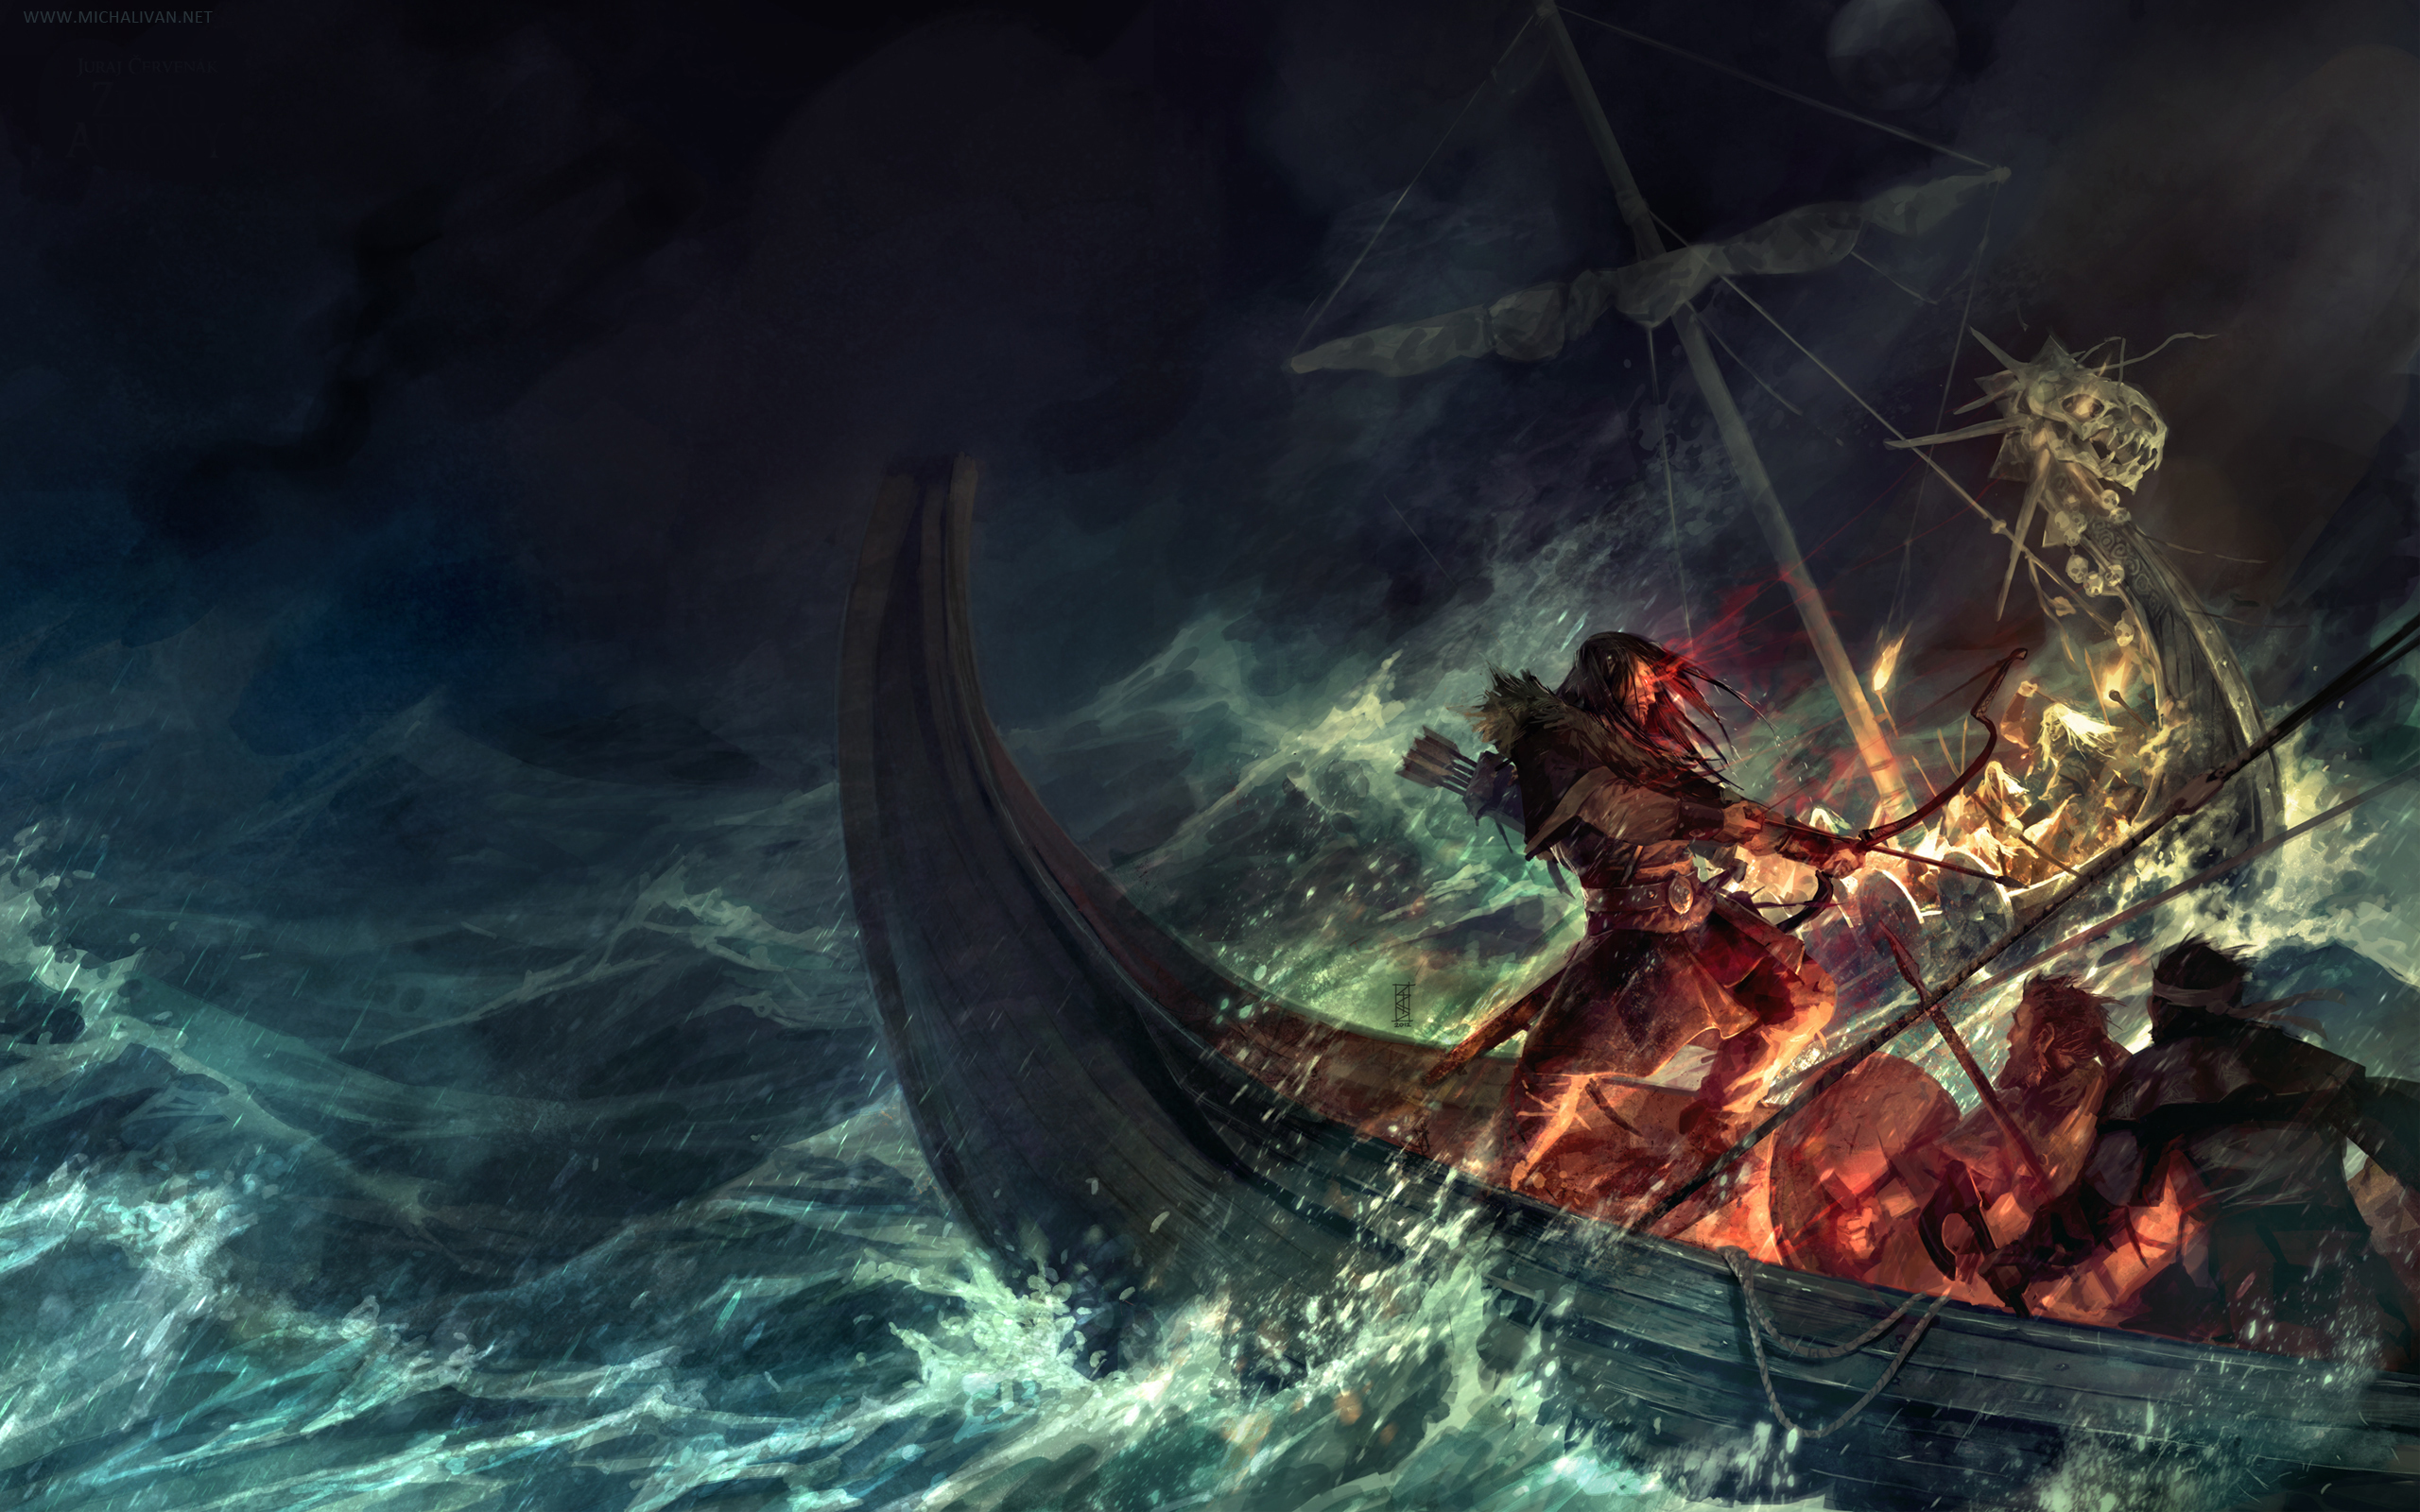 21 viking fonds d 39 cran hd arri re plans wallpaper abyss - Norse mythology 4k wallpaper ...